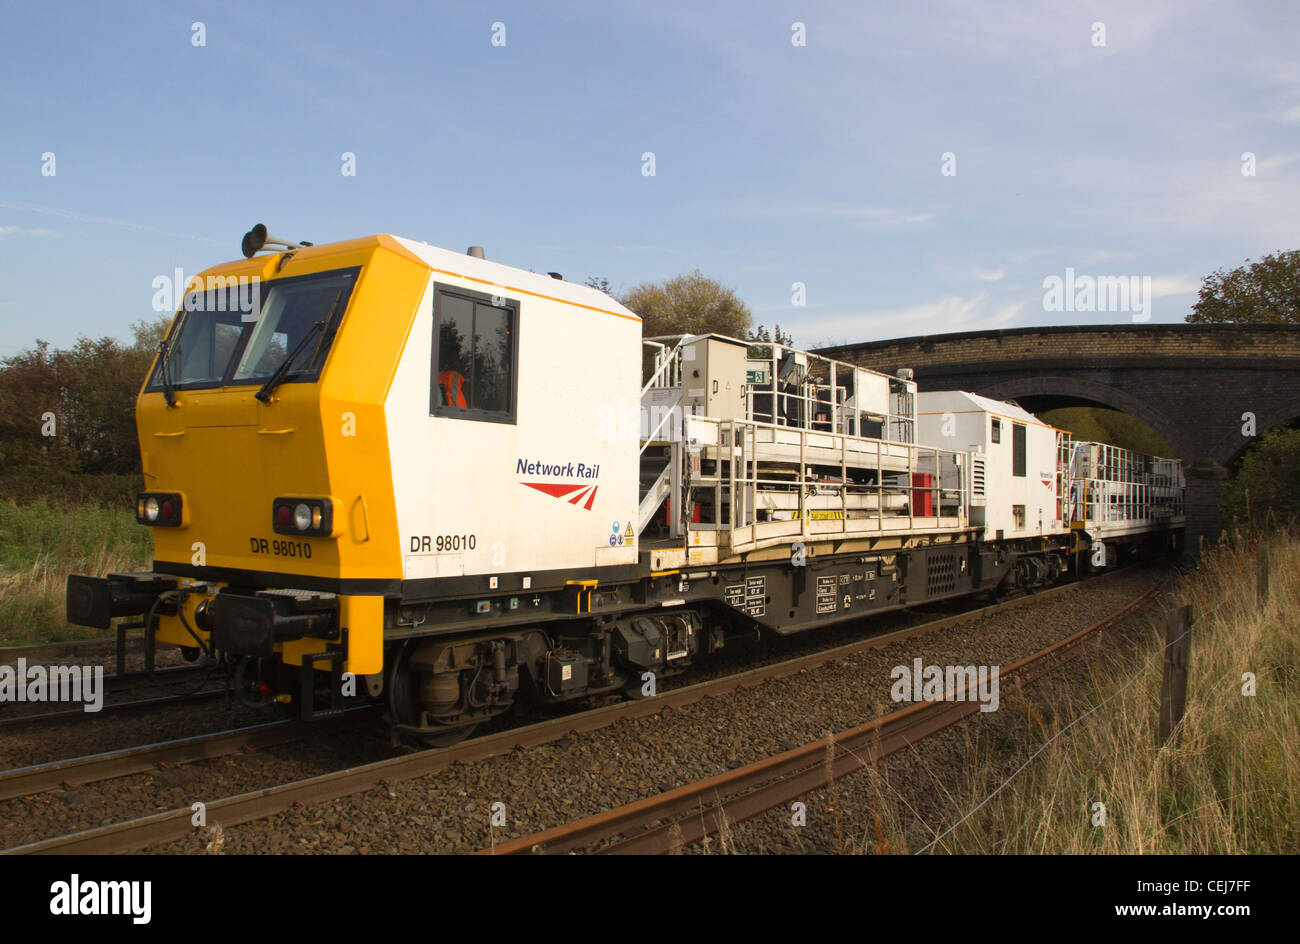 Network Rail track machine DR 98008 awaits its path onto the Derby to Birmingham line at Stenson, Derby. - Stock Image